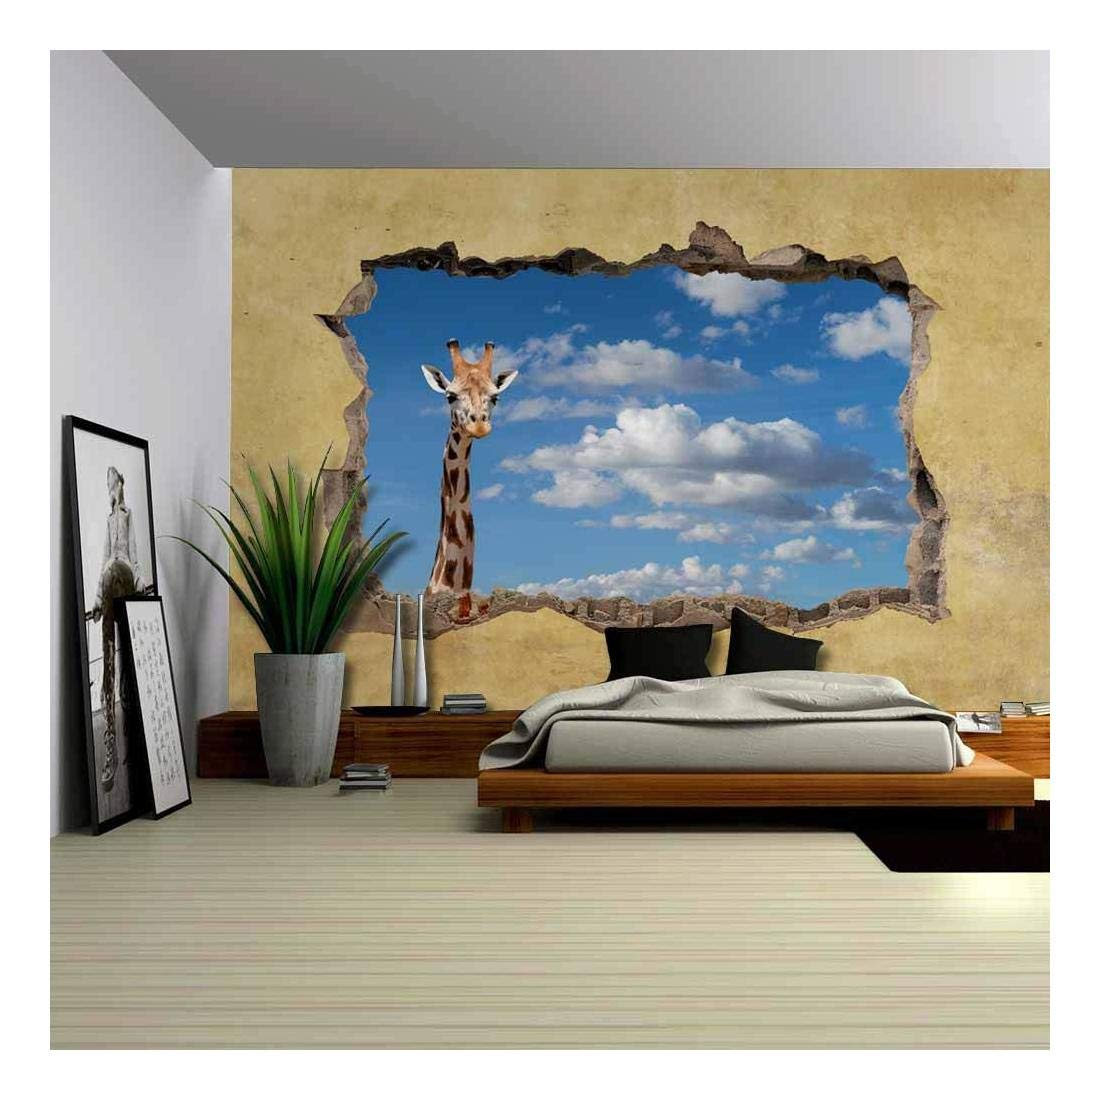 wall26 Giraffe Viewed through a Broken Wall - Large Wall Mural, Removable Peel and Stick Wallpaper, Home Decor - 66x96 inches